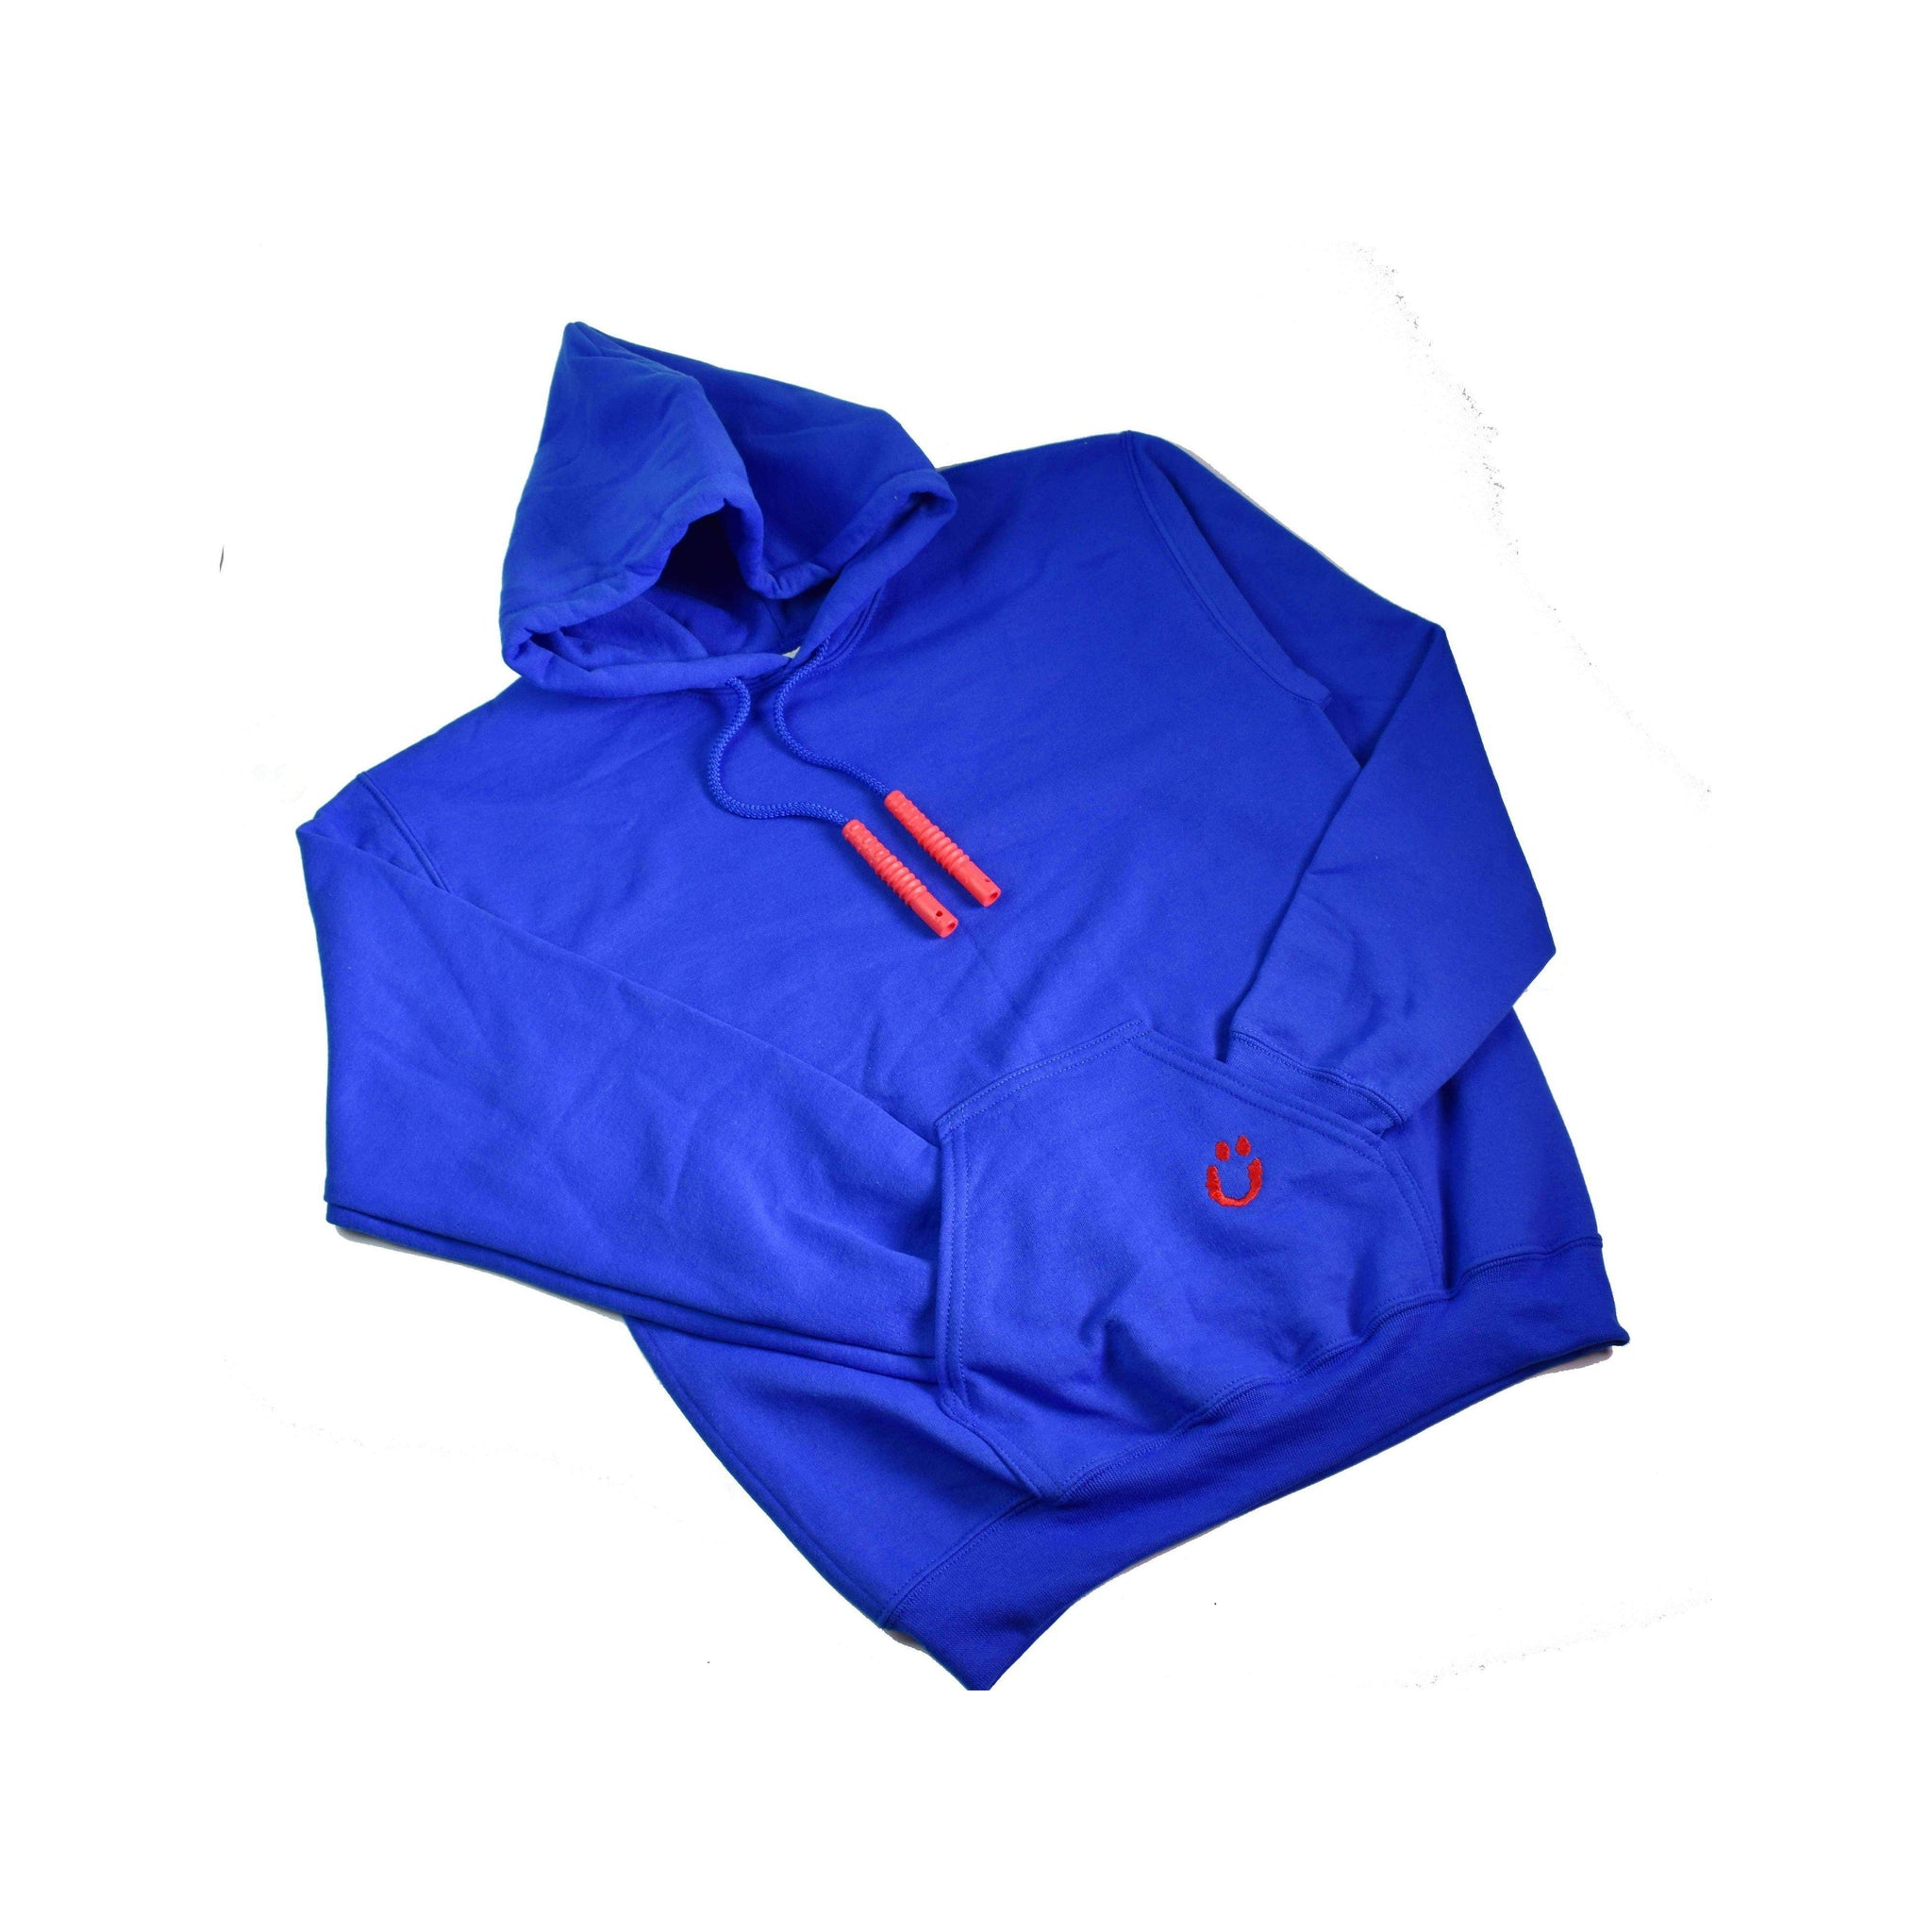 Chubuddy Hood Zilla Royal Blue Adult S, M, L, XL with Red Cord Zillas for discreet, convenient chewing and calming